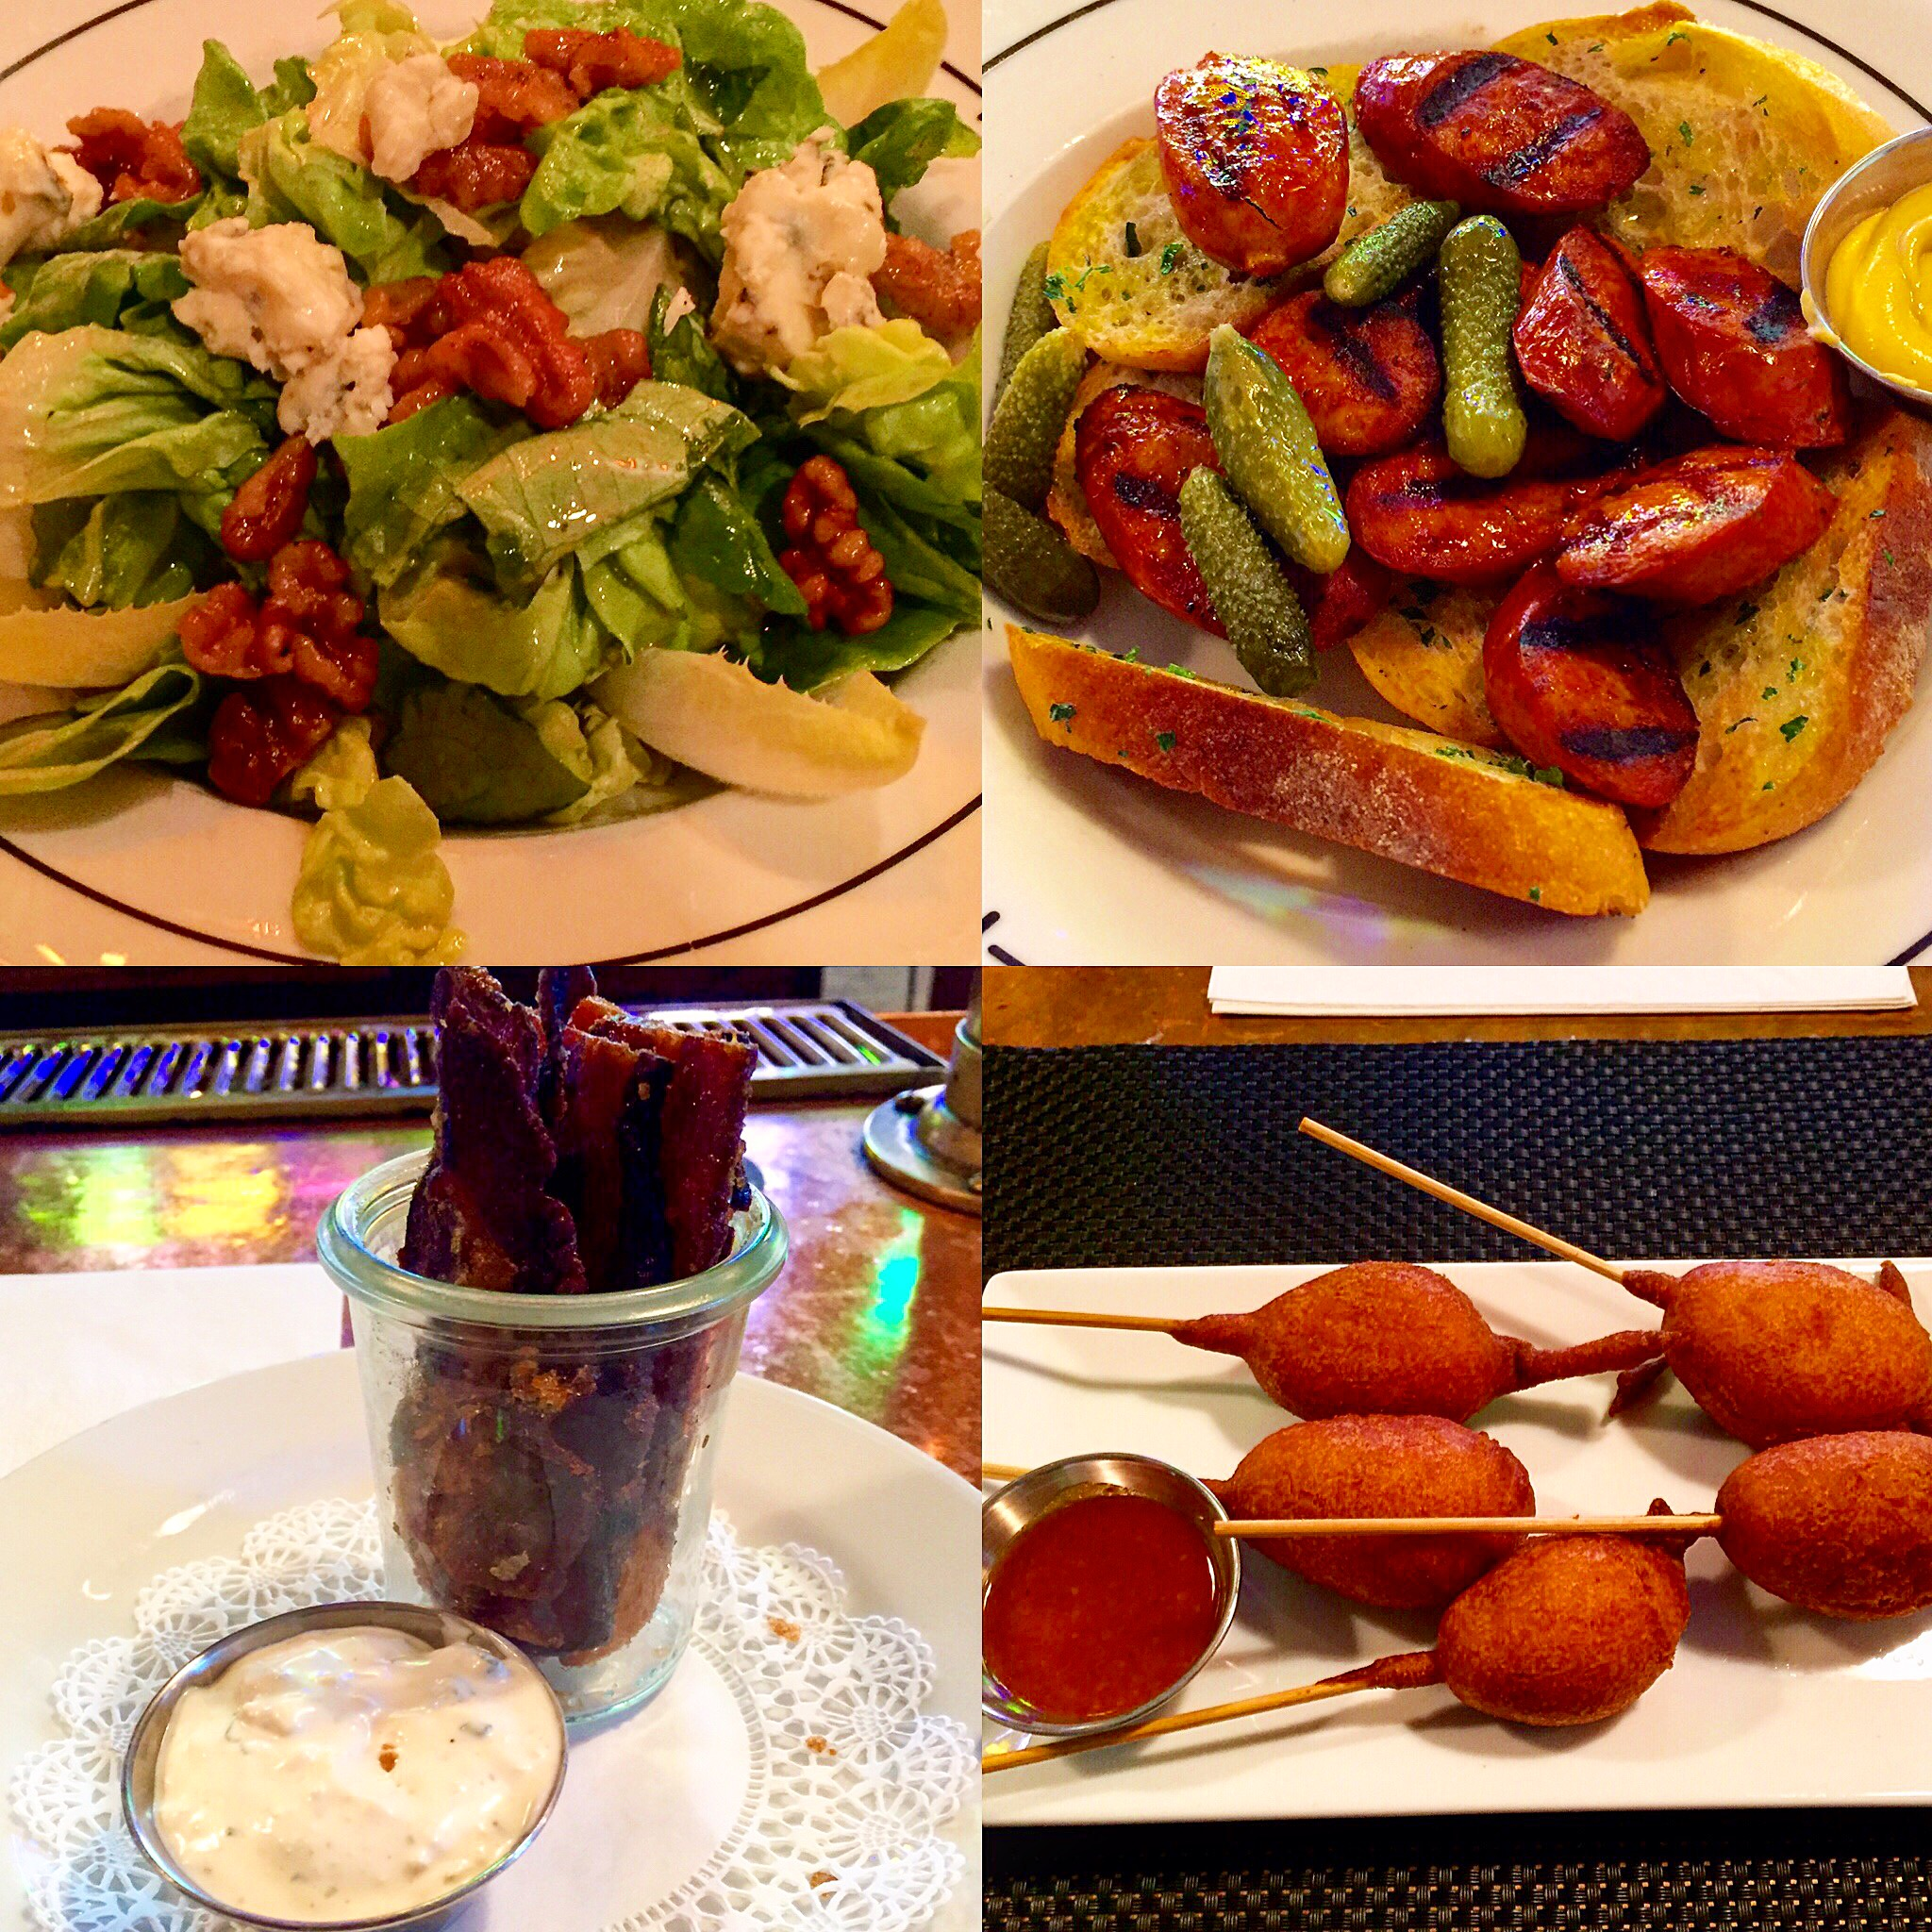 (From clockwise): Roquefort Walnut Salad, Smoked Sausage, Candied Bacon, and Corn Dogs